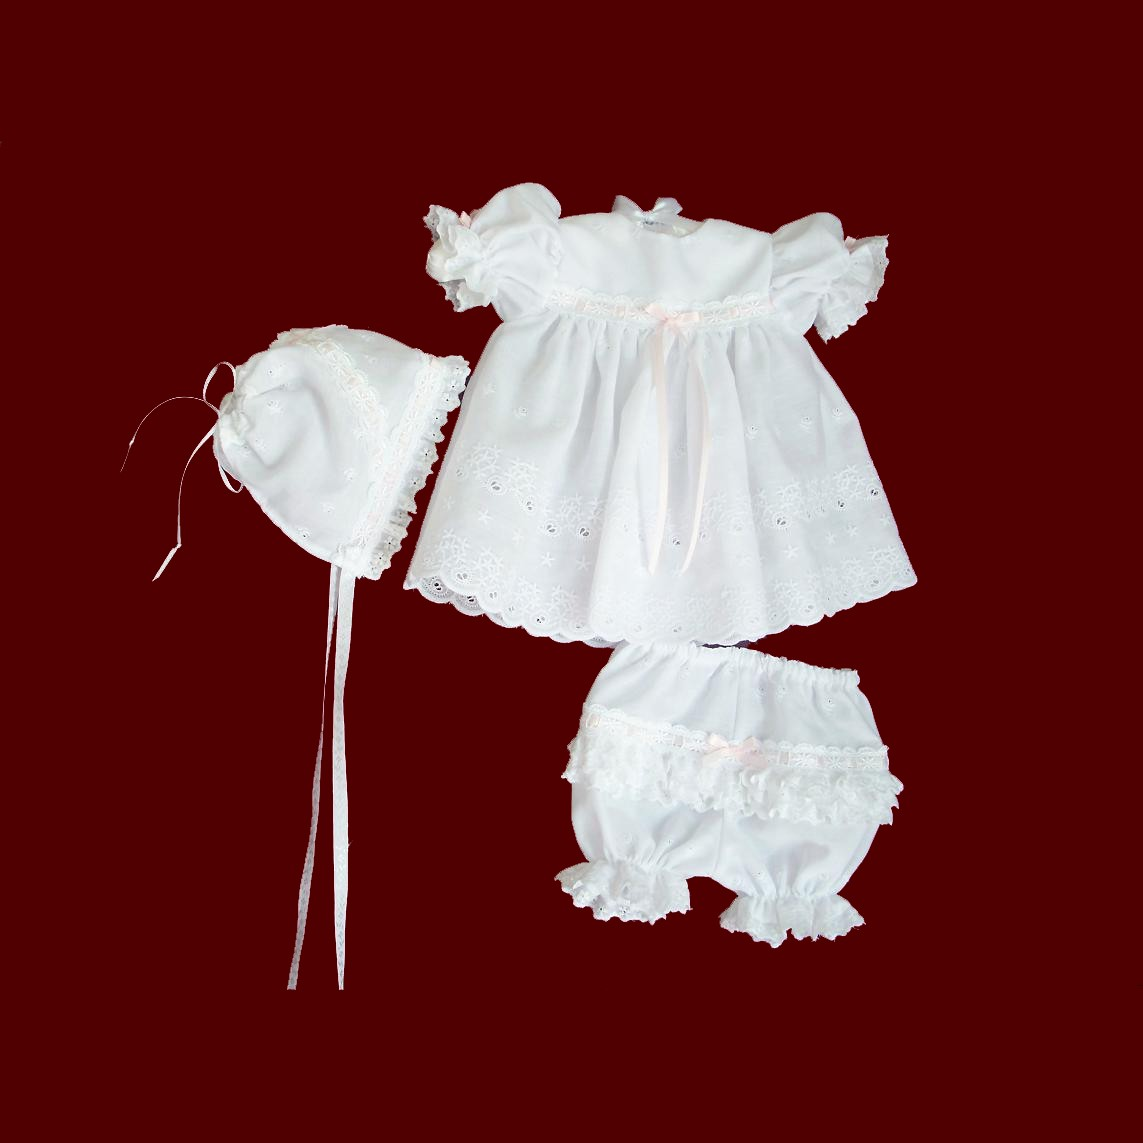 Eyelet Party Dress With Panties & Bonnet